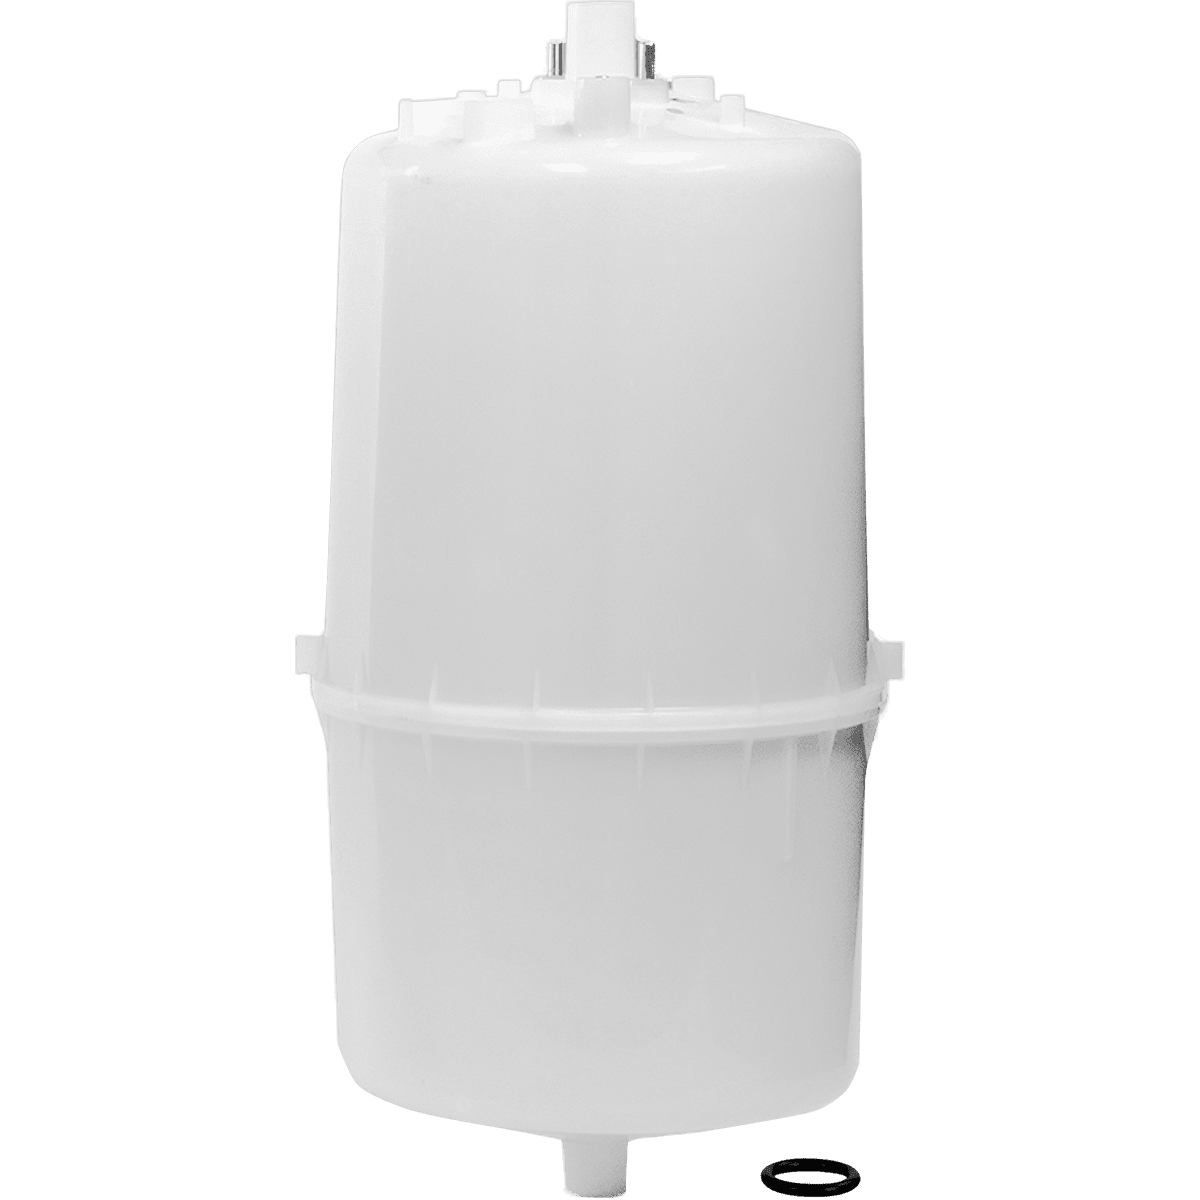 Aprilaire 311aac Steam Humidifier Cylinder (fits Nortec® 311)